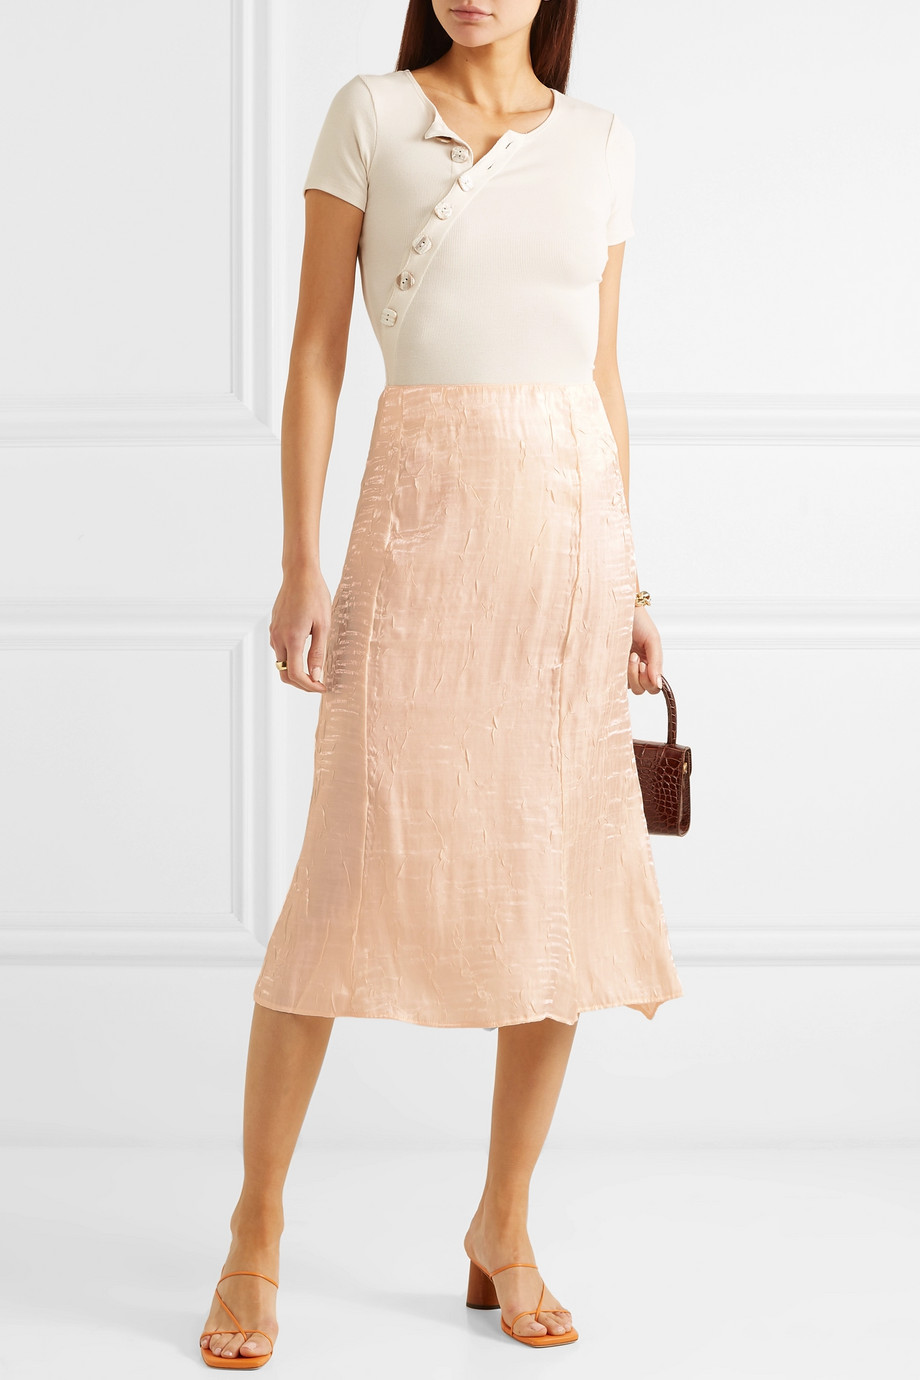 THE LINE BY K Grace crinkled-satin midi skirt